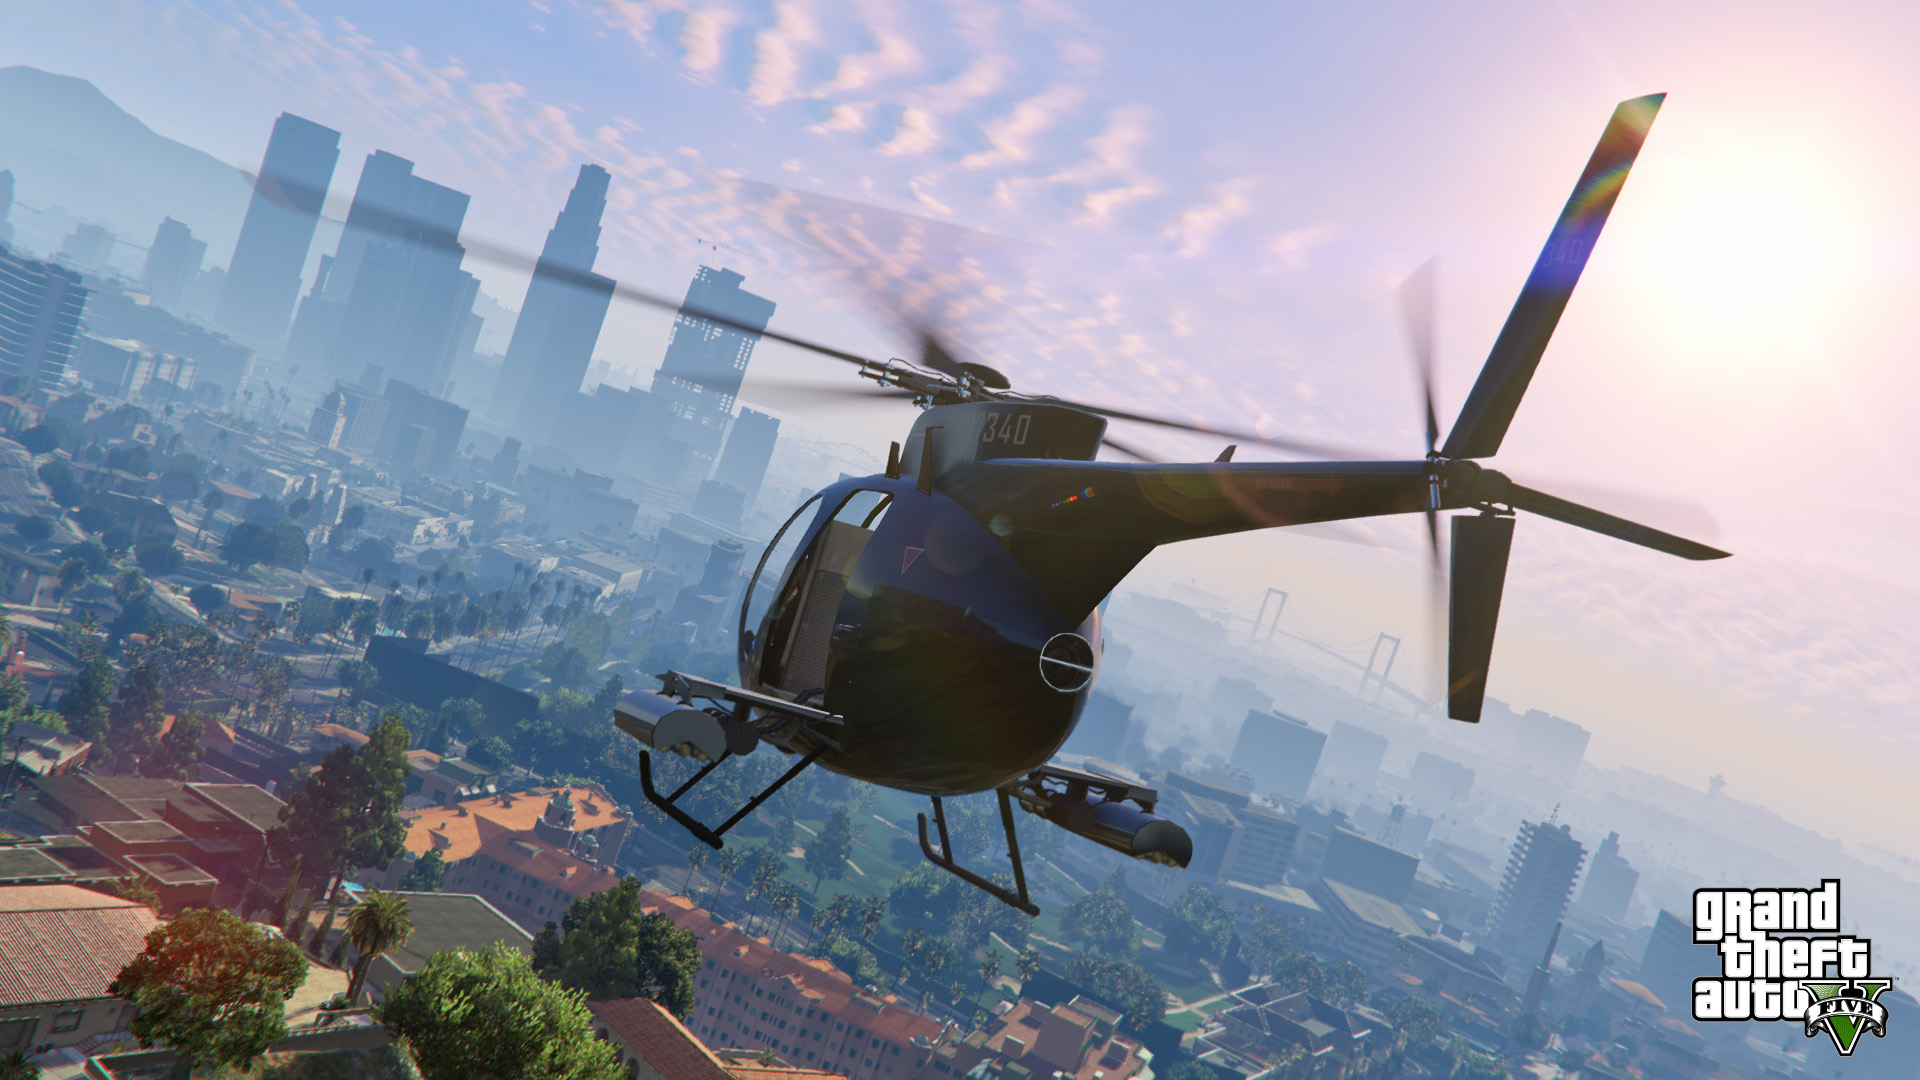 Grand Theft Auto V Release Dates and Exclusive Content